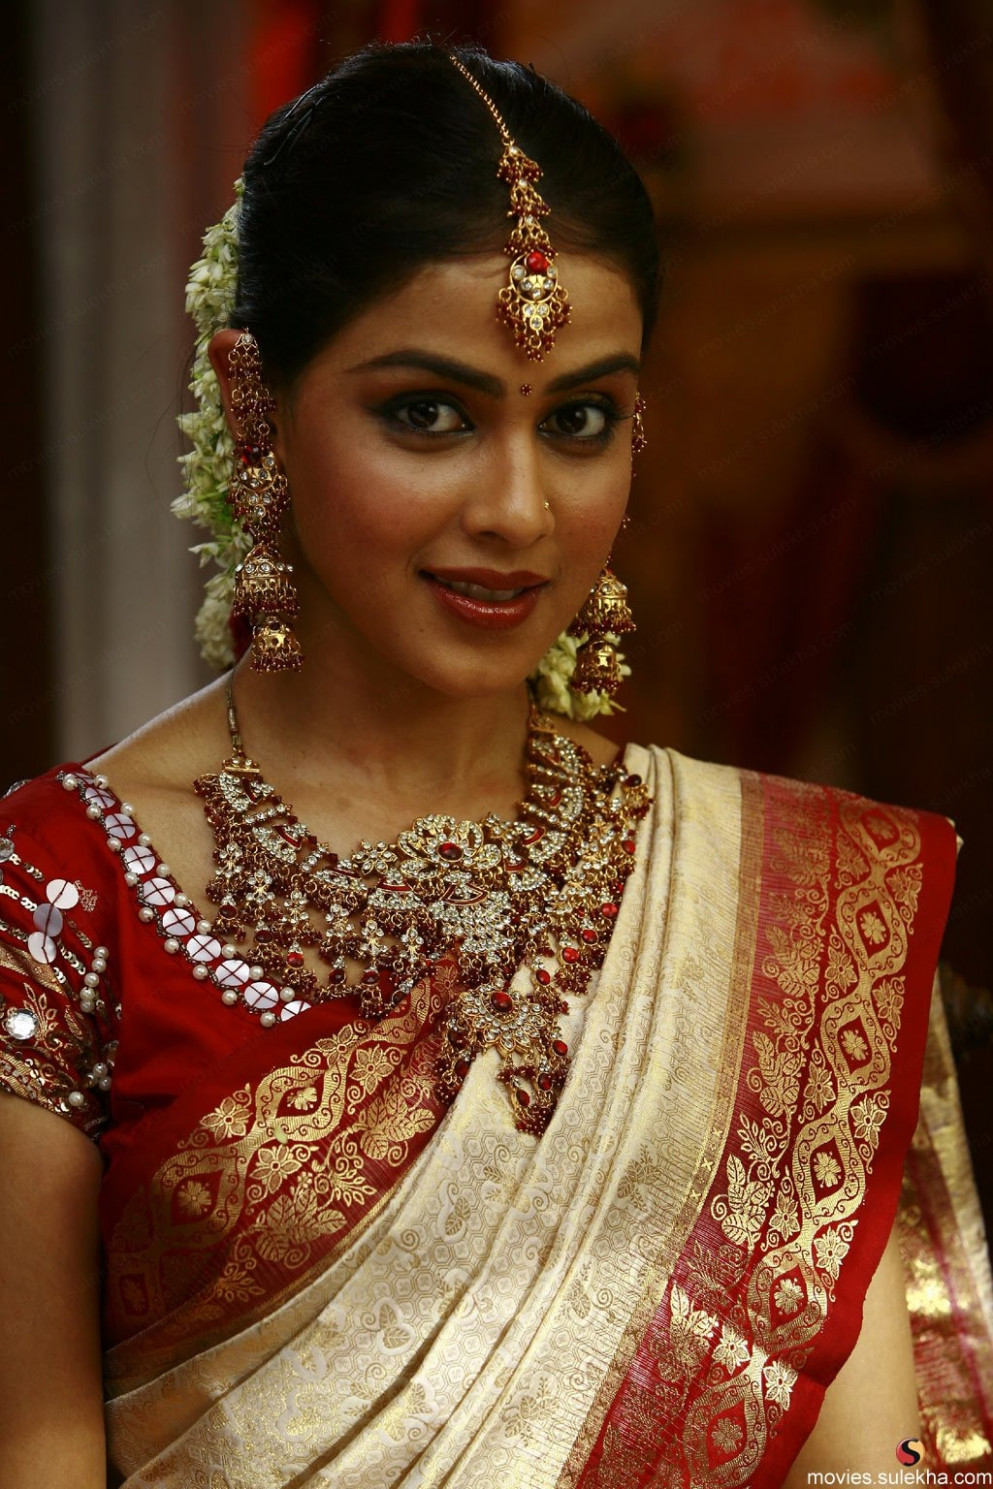 cute genelia in traditional saree and bridal makeup | Cute ...